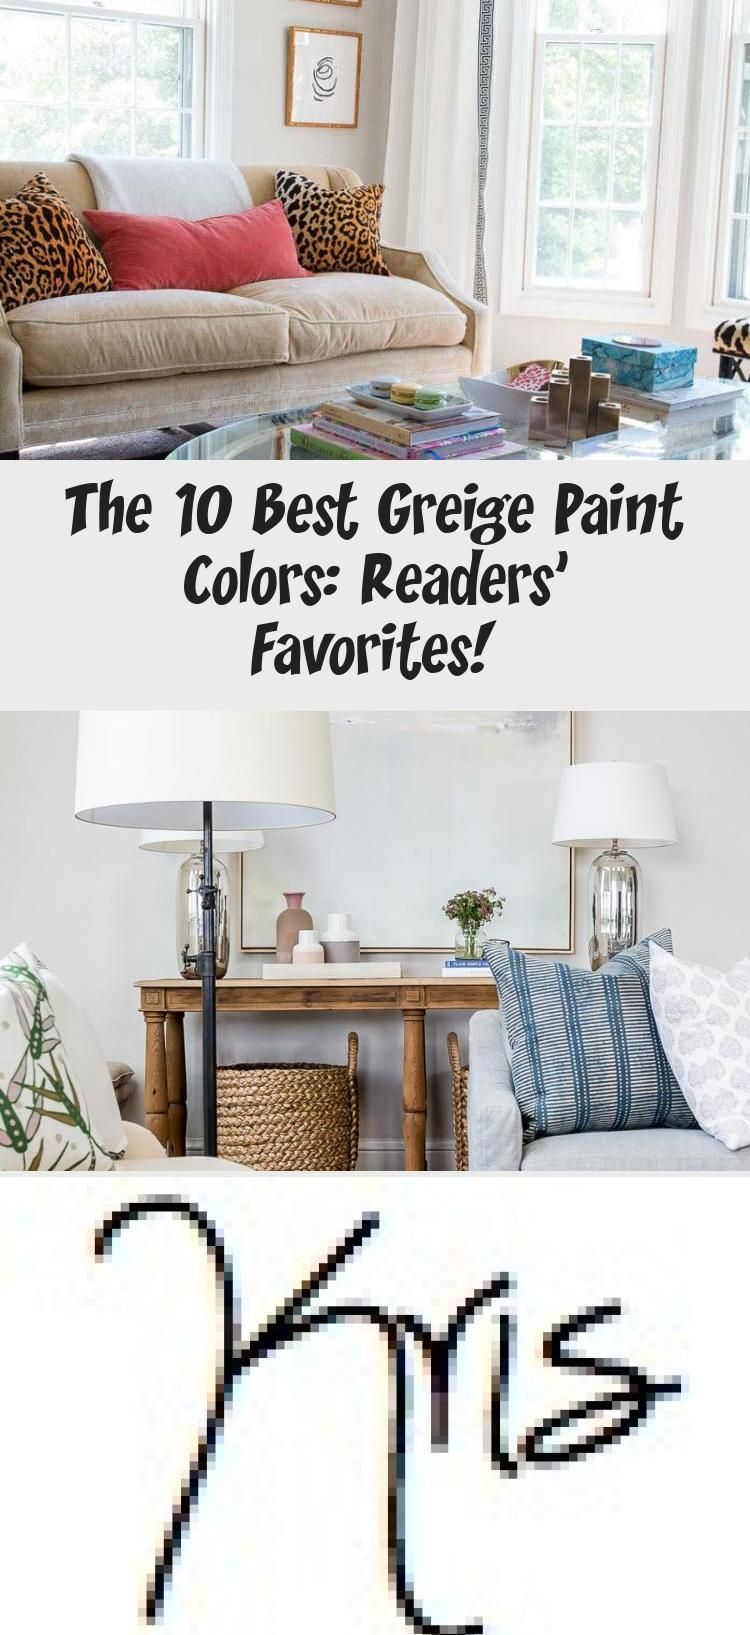 the 10 best greige paint colors readers favorites 2020 on 10 most popular paint colors id=86194